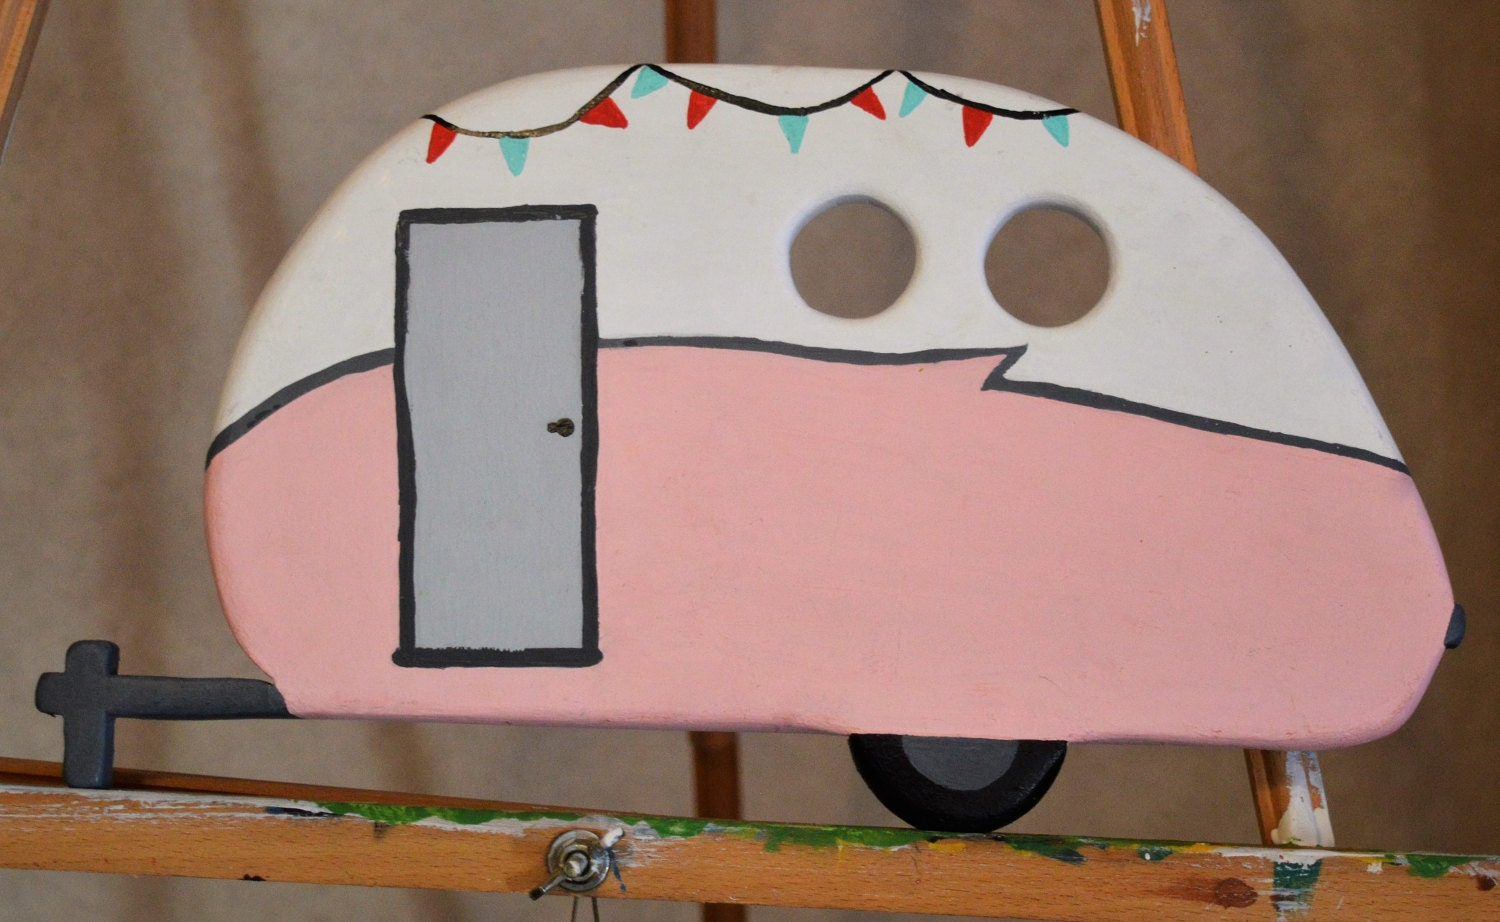 Hand Painted Camper Wood Cut Out Wooden Shapes Glamping